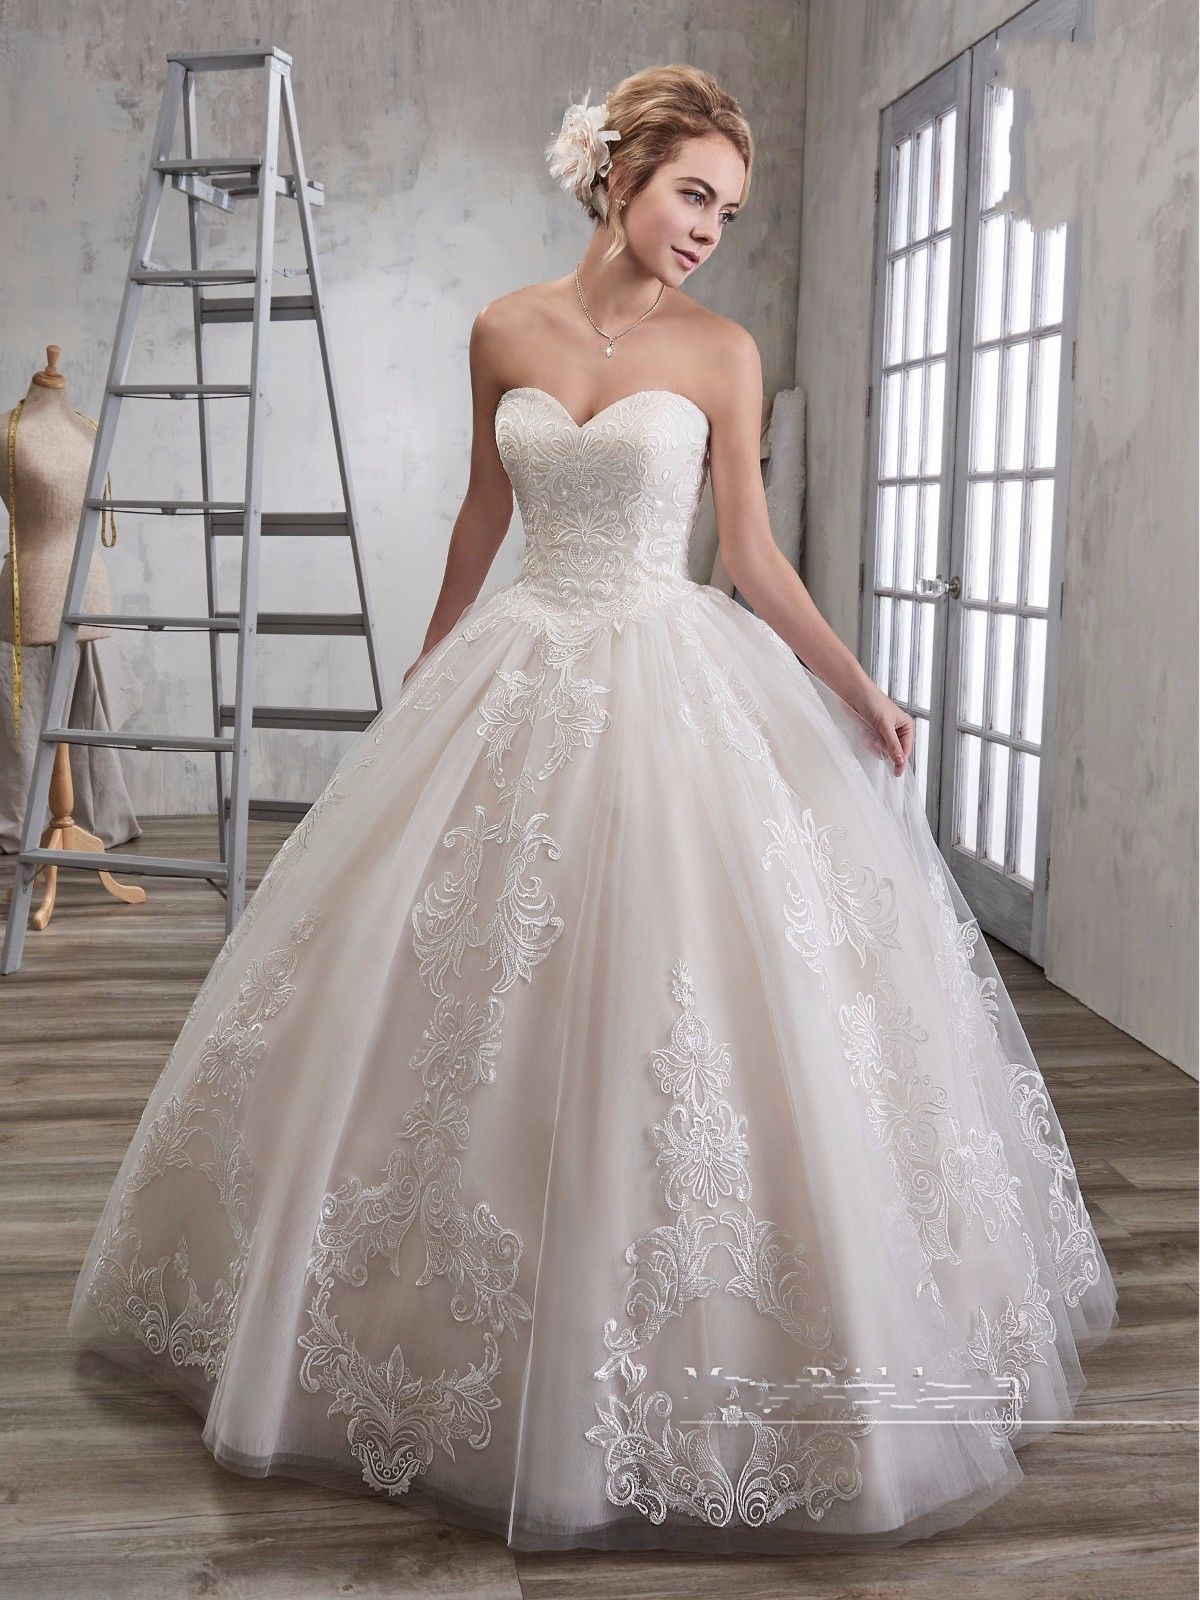 Sweet lace tulle ball wedding dress princess whiteivory bridal gown